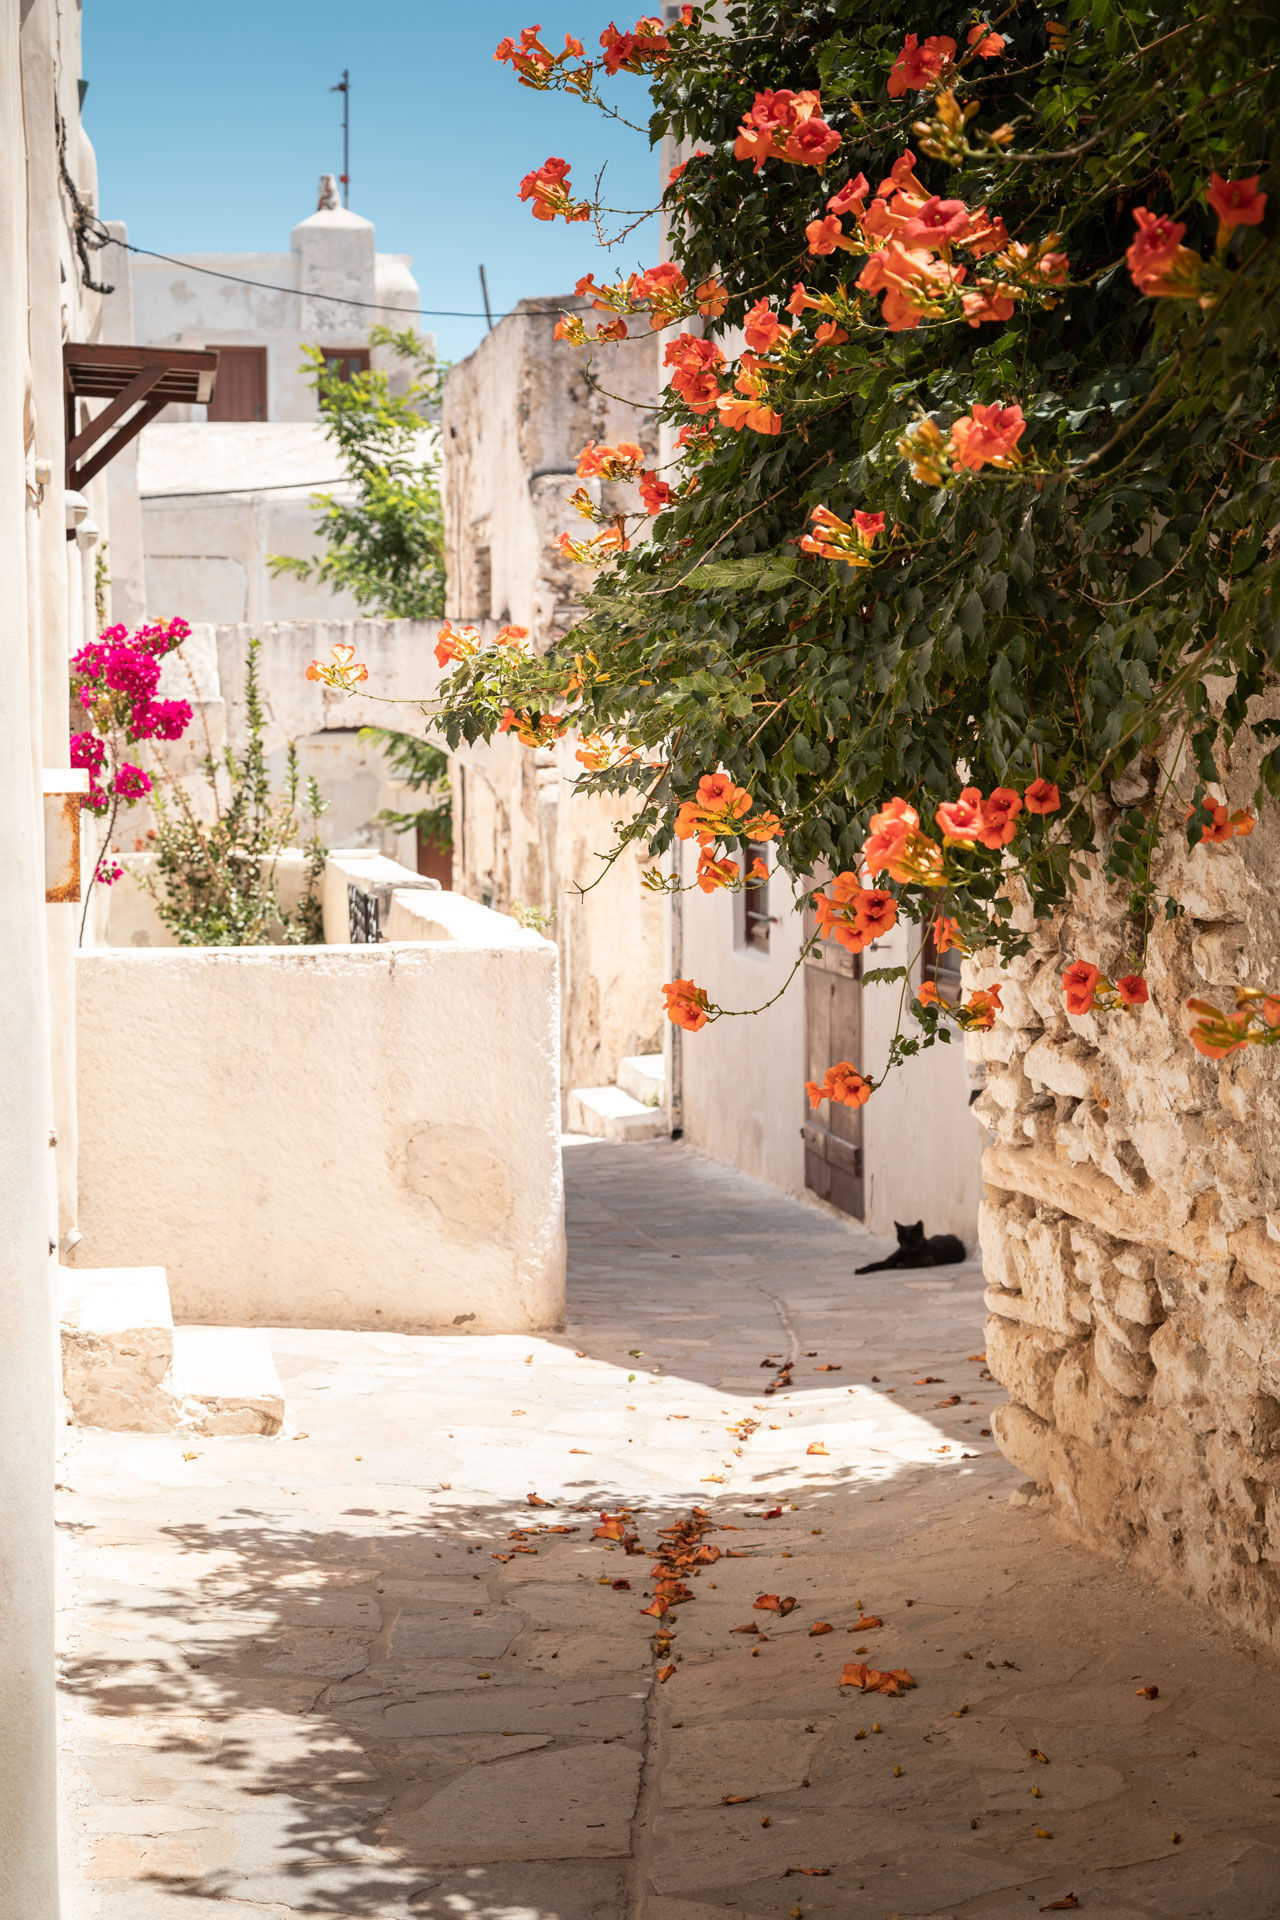 Whitewashed houses and old stone houses in Naxos' Hora